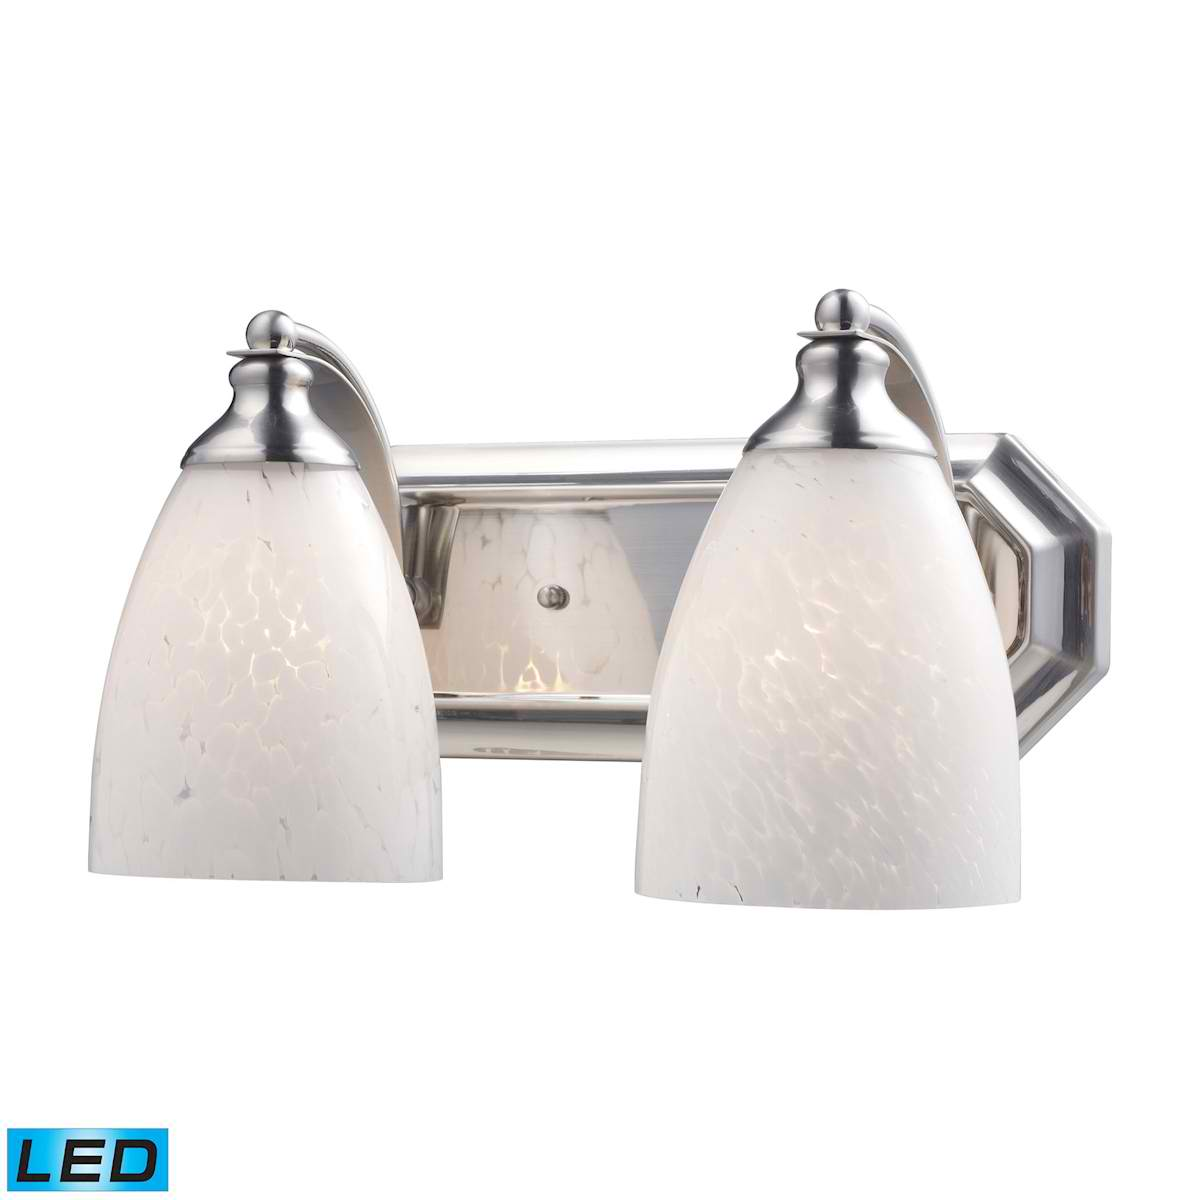 2 Light Vanity in Satin Nickel and Snow White Glass - LED, 800 Lumens (1600 Lumens Total) with Full Scale